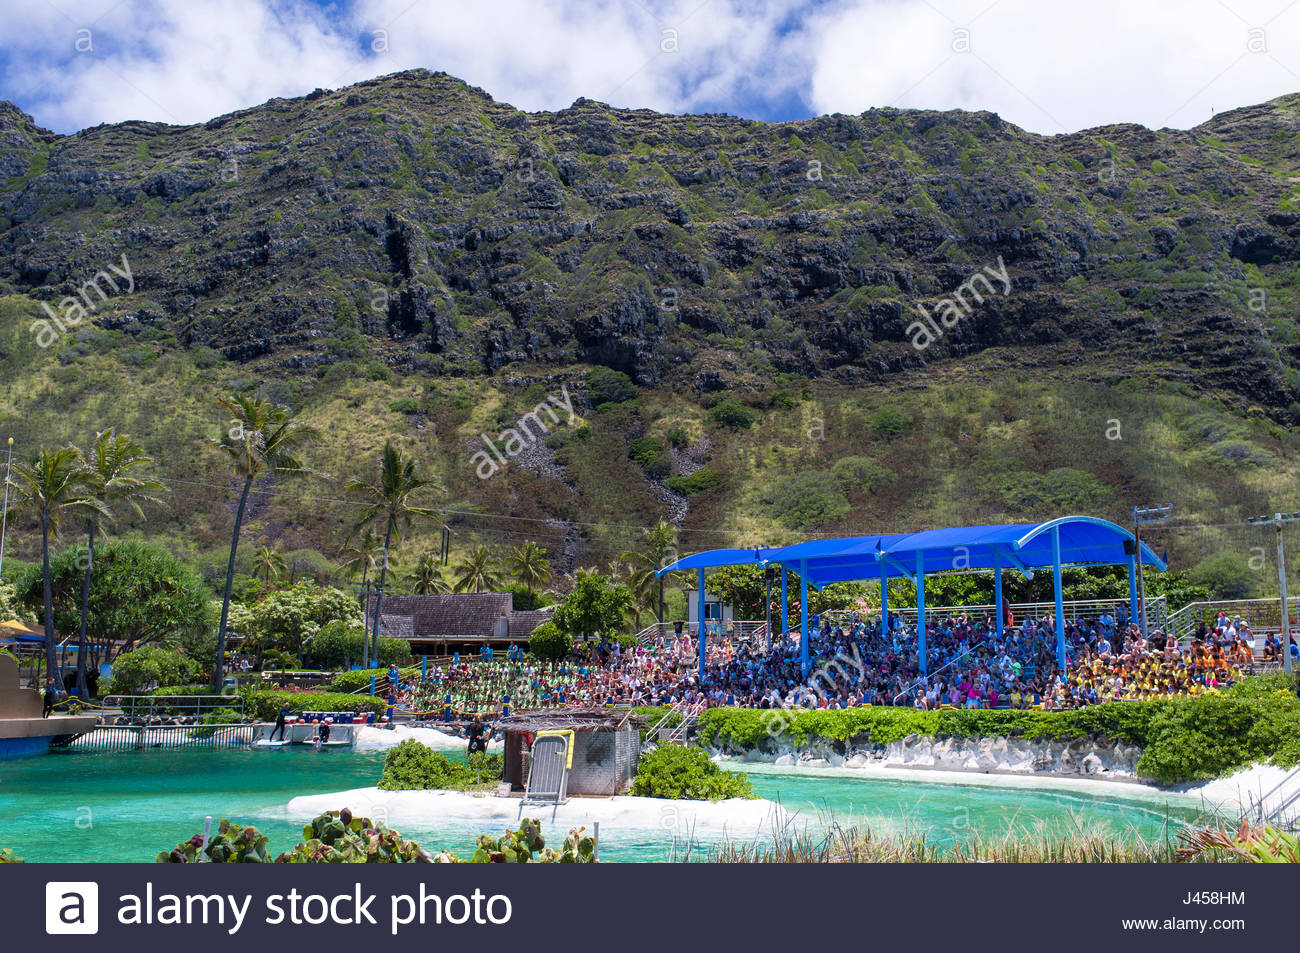 Large group of people sitting on bleachers watching the Dolphin Cove Show at Sea Life Park, Waimanalo, Oahu, Hawaii, - Stock Image